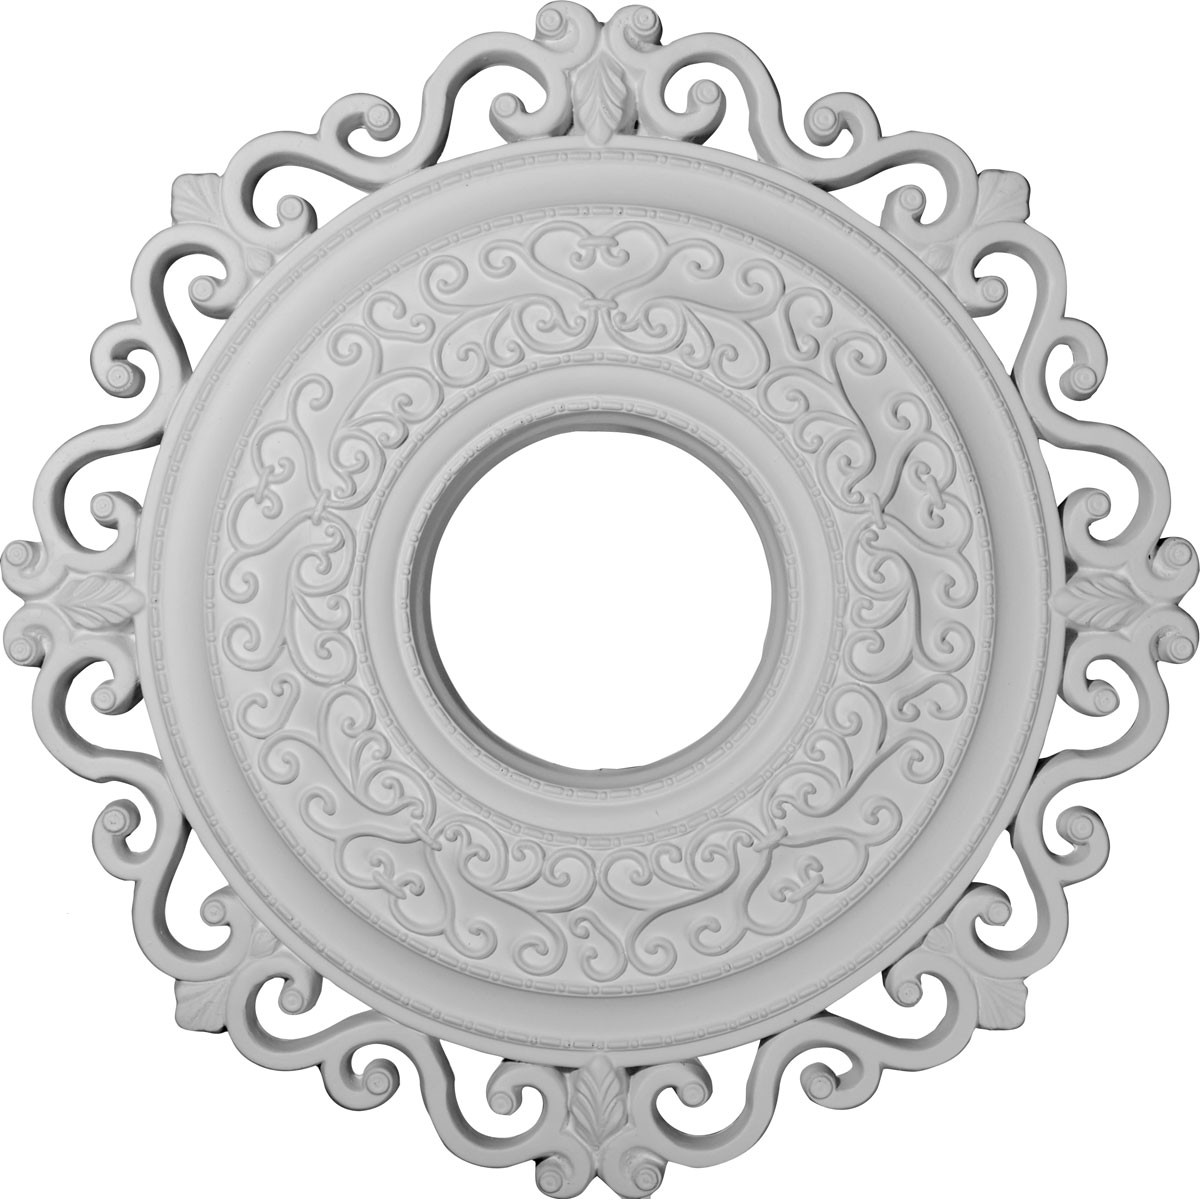 """EM-CM22OR - 22""""OD x 6 1/4""""ID x 1 3/4""""P Orrington Ceiling Medallion (Fits Canopies up to 6 1/4"""")"""